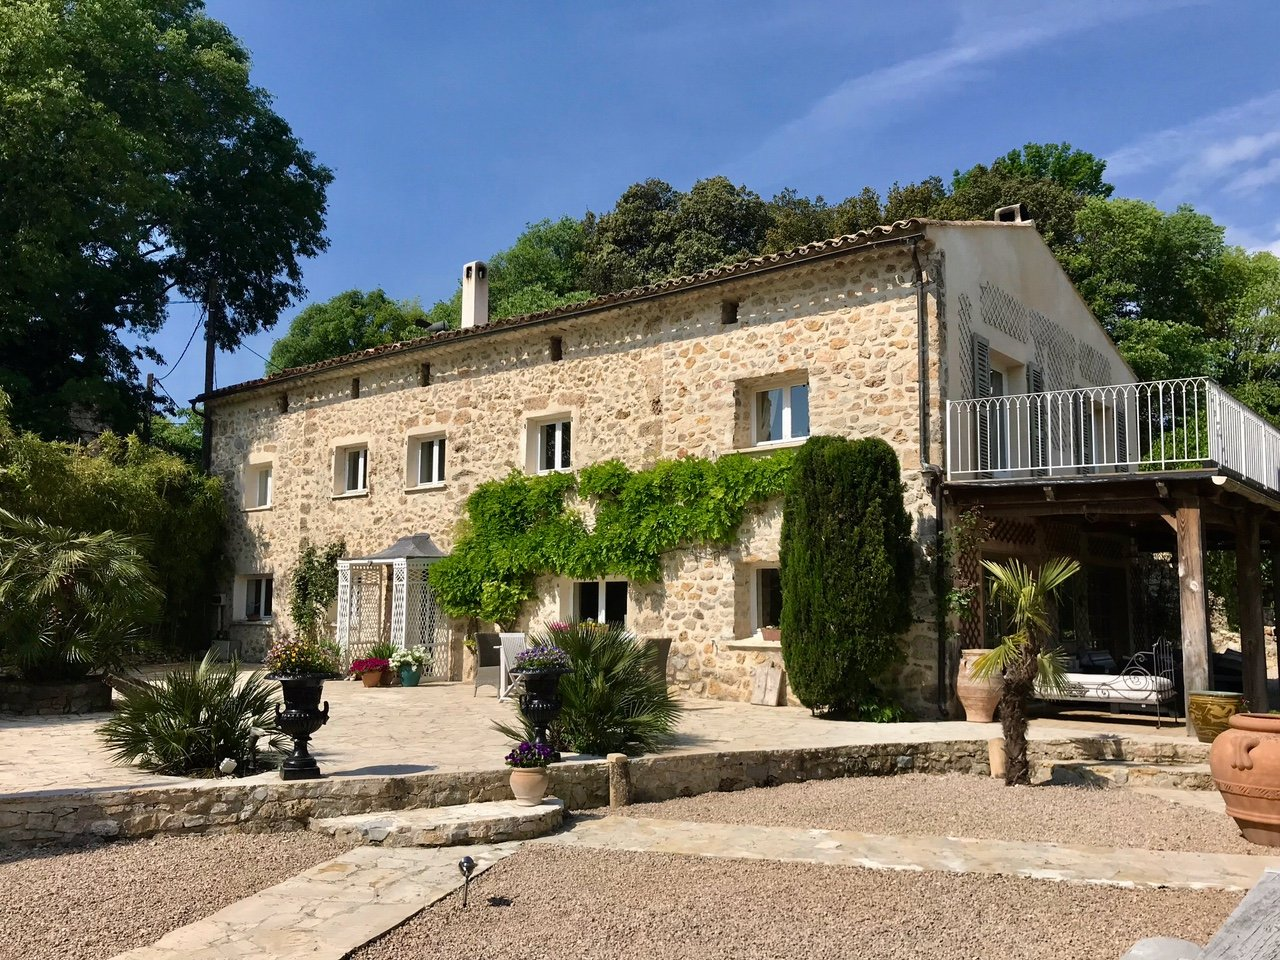 Two authentic,renovated bastides with a river